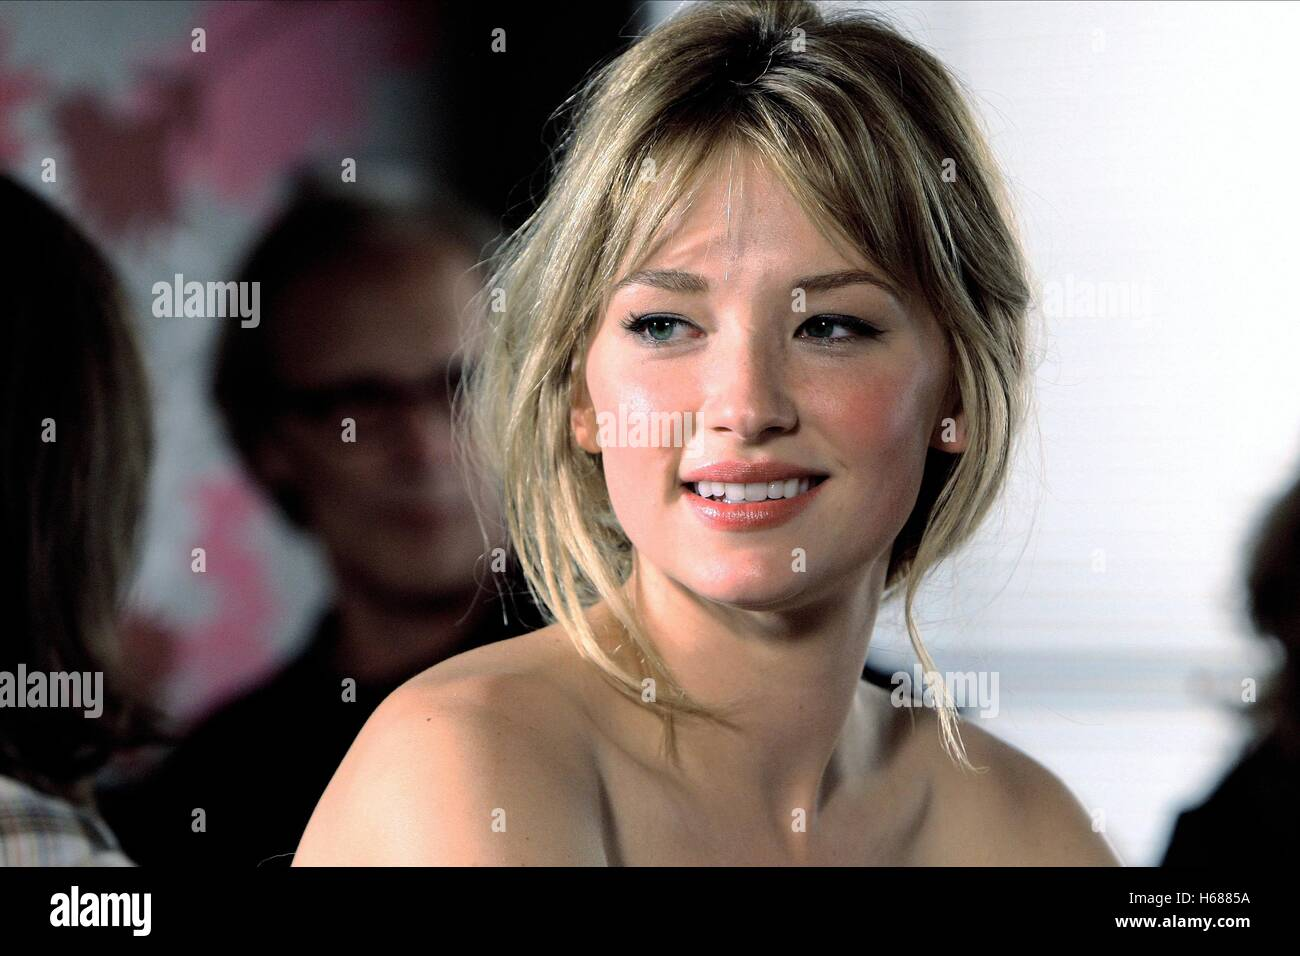 HALEY BENNETT OUTLAW COUNTRY (2012 Stock Photo, Royalty ... Haley Bennett 2012